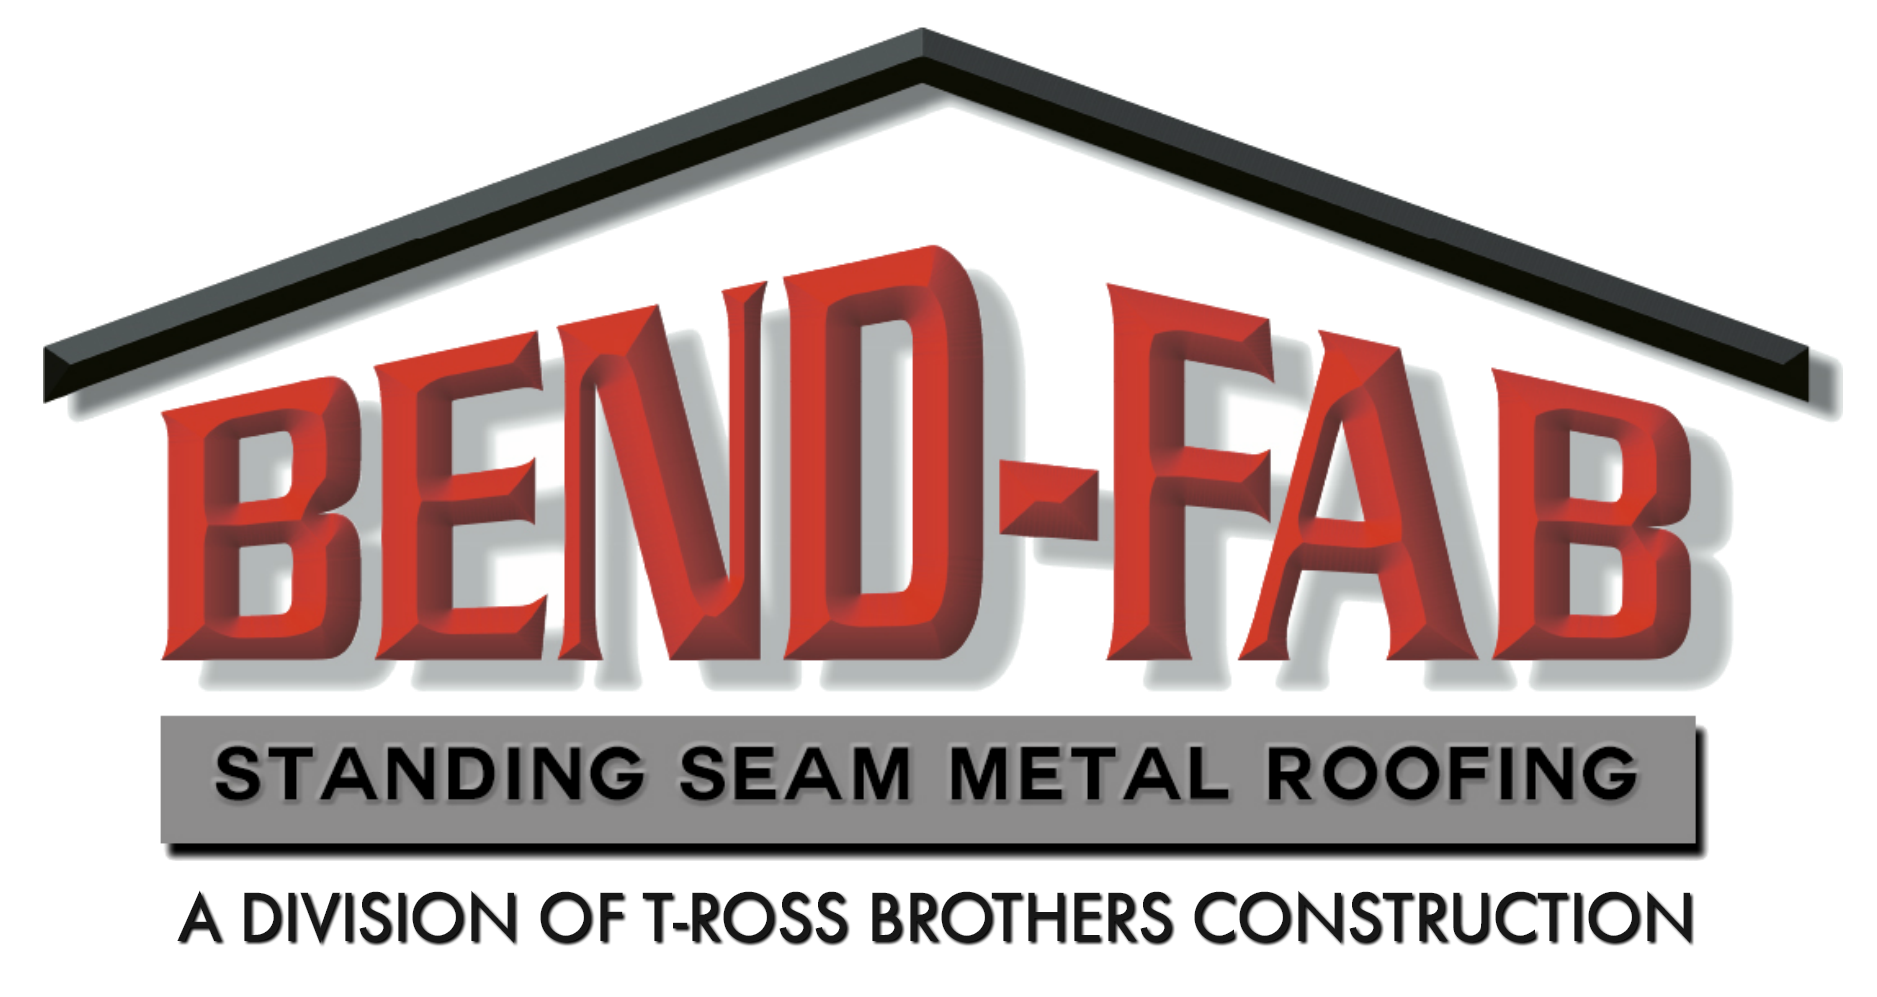 Bend-Fab Standing Seam Metal Roofing